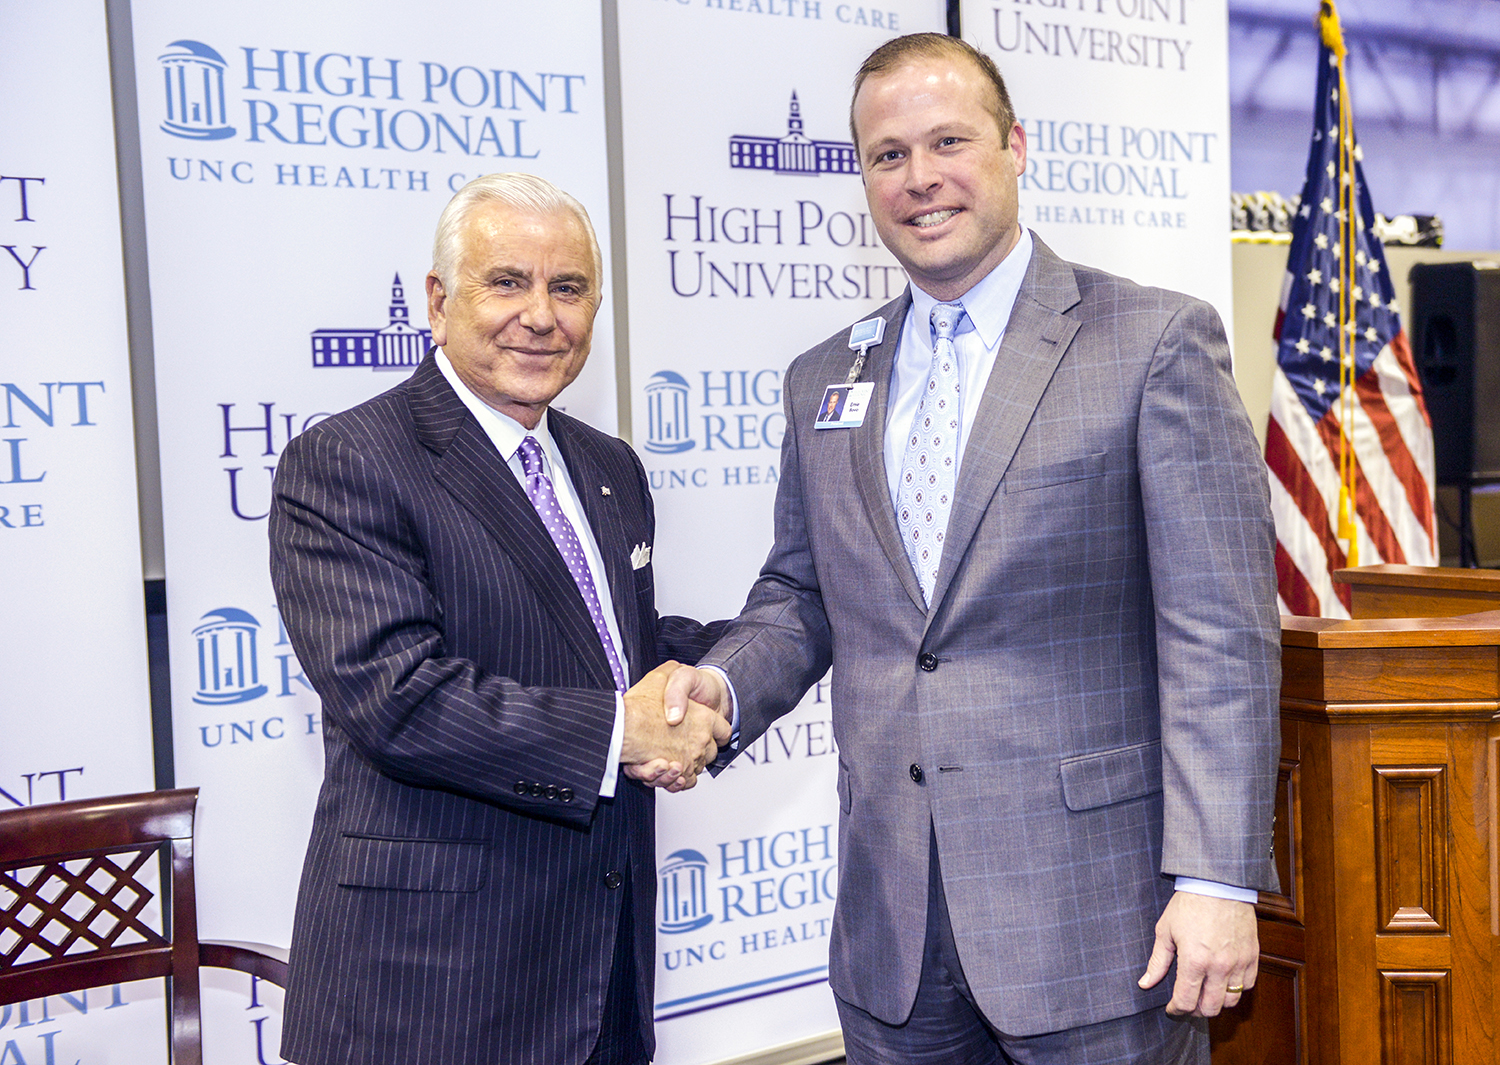 On Wednesday, HPU and High Point Regional Hospital announced the partnered creation of the Community Rehabilitation Clinic – a clinic that will treat community members with a variety of physical therapy and rehabilitation needs.